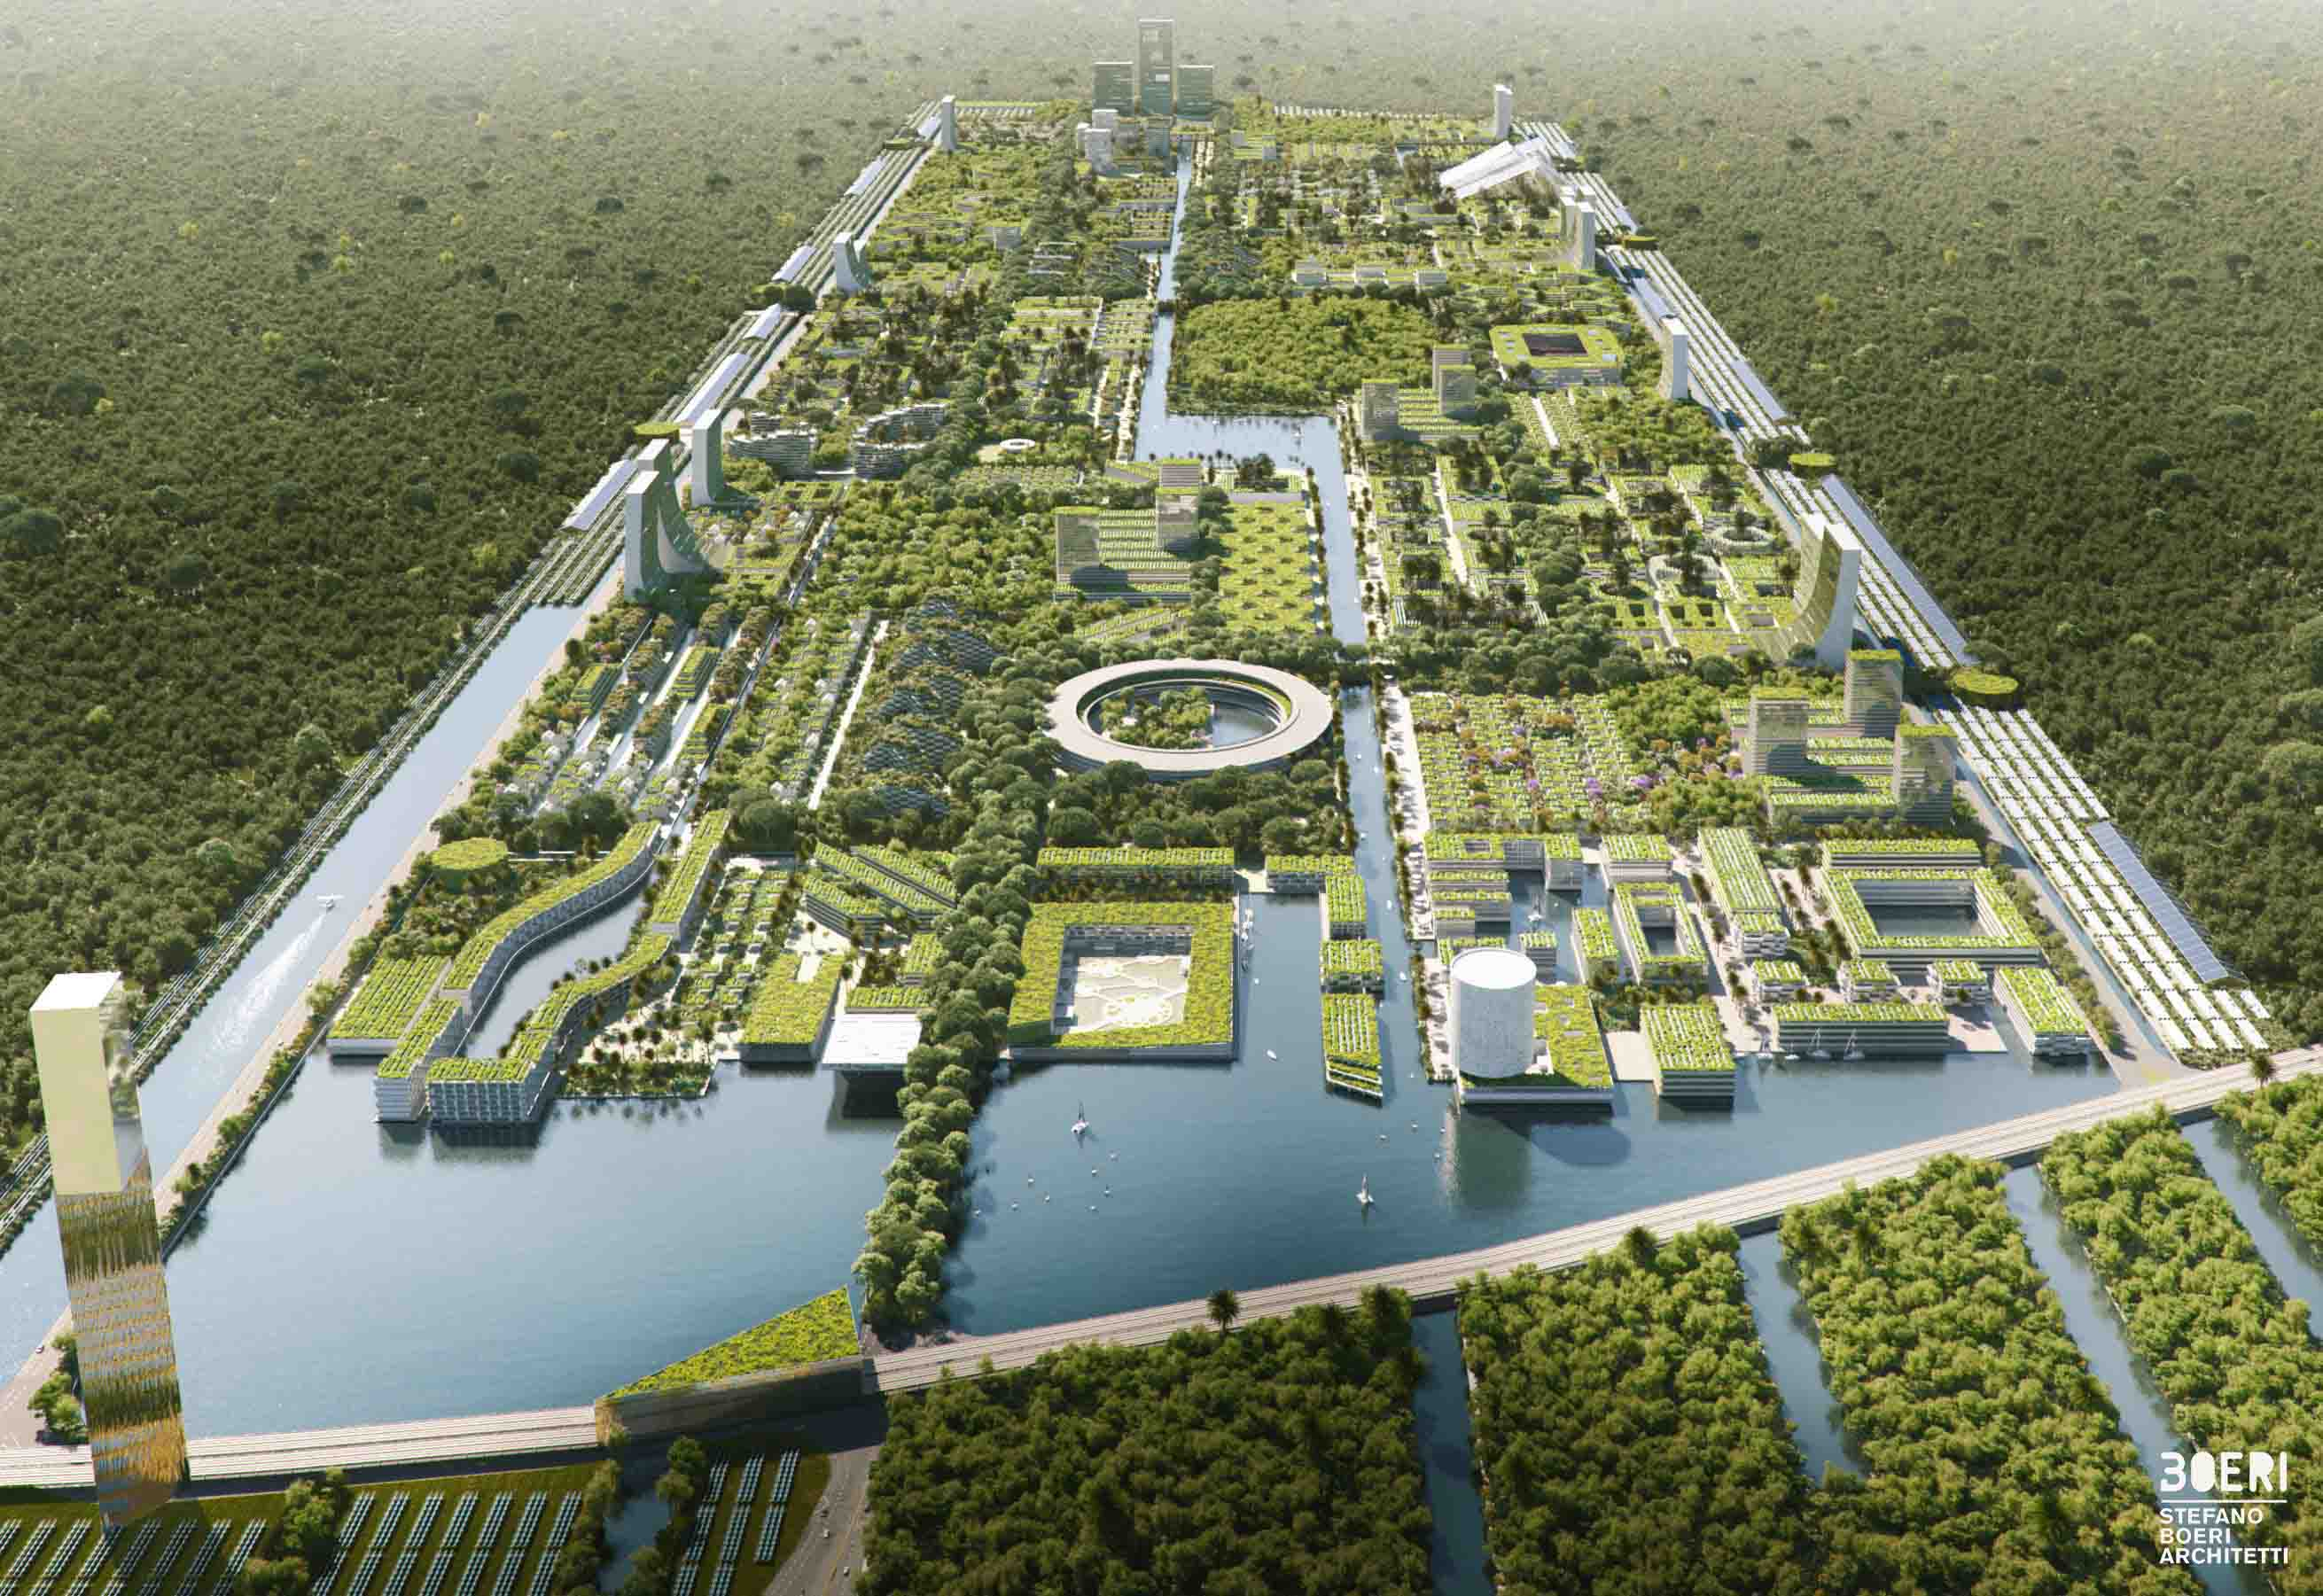 Smart Forest City, Stefano Boeri's project